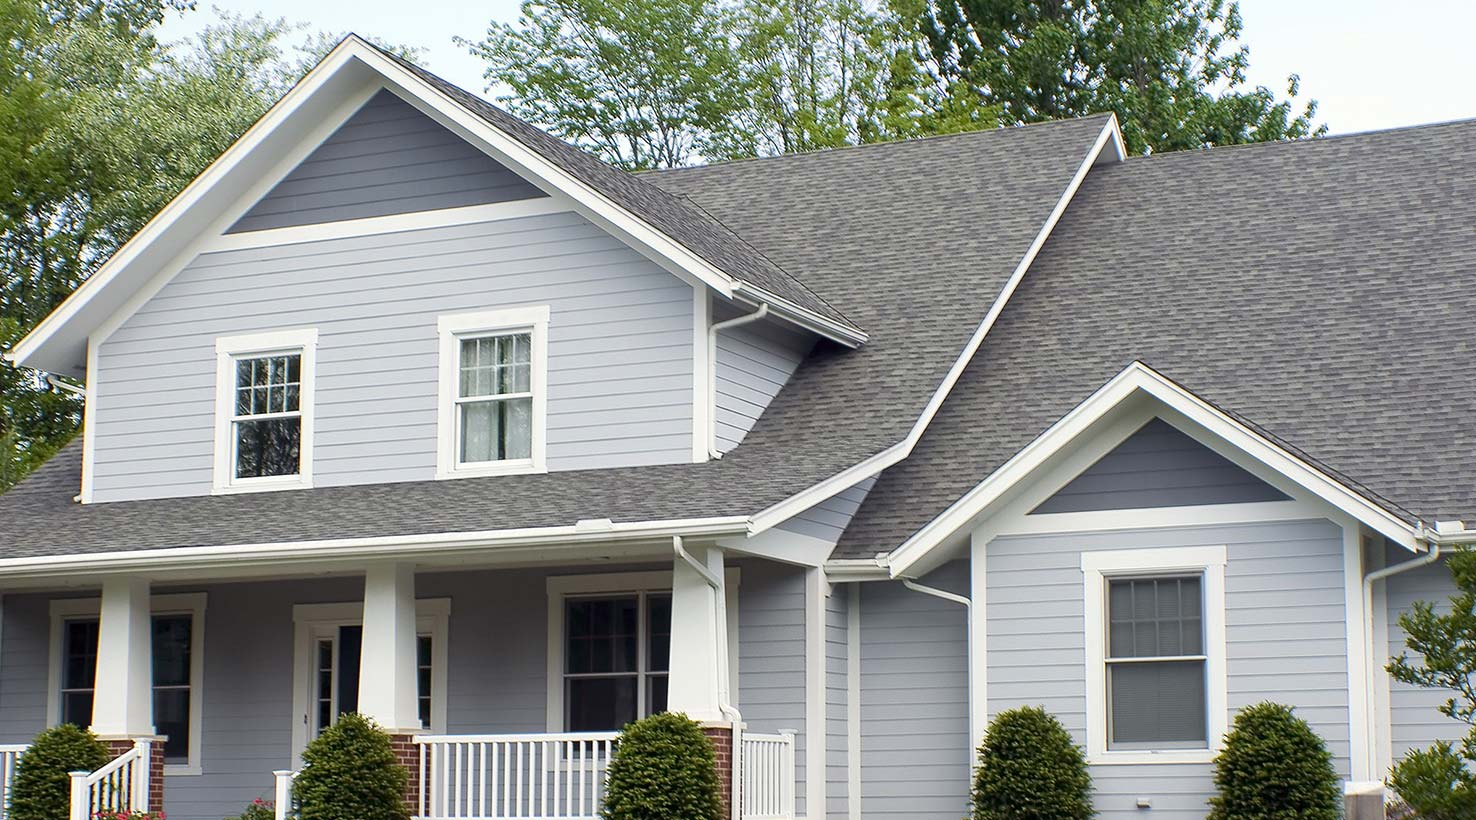 Exterior house color inspiration sherwin williams - Colours for exterior house painting ...